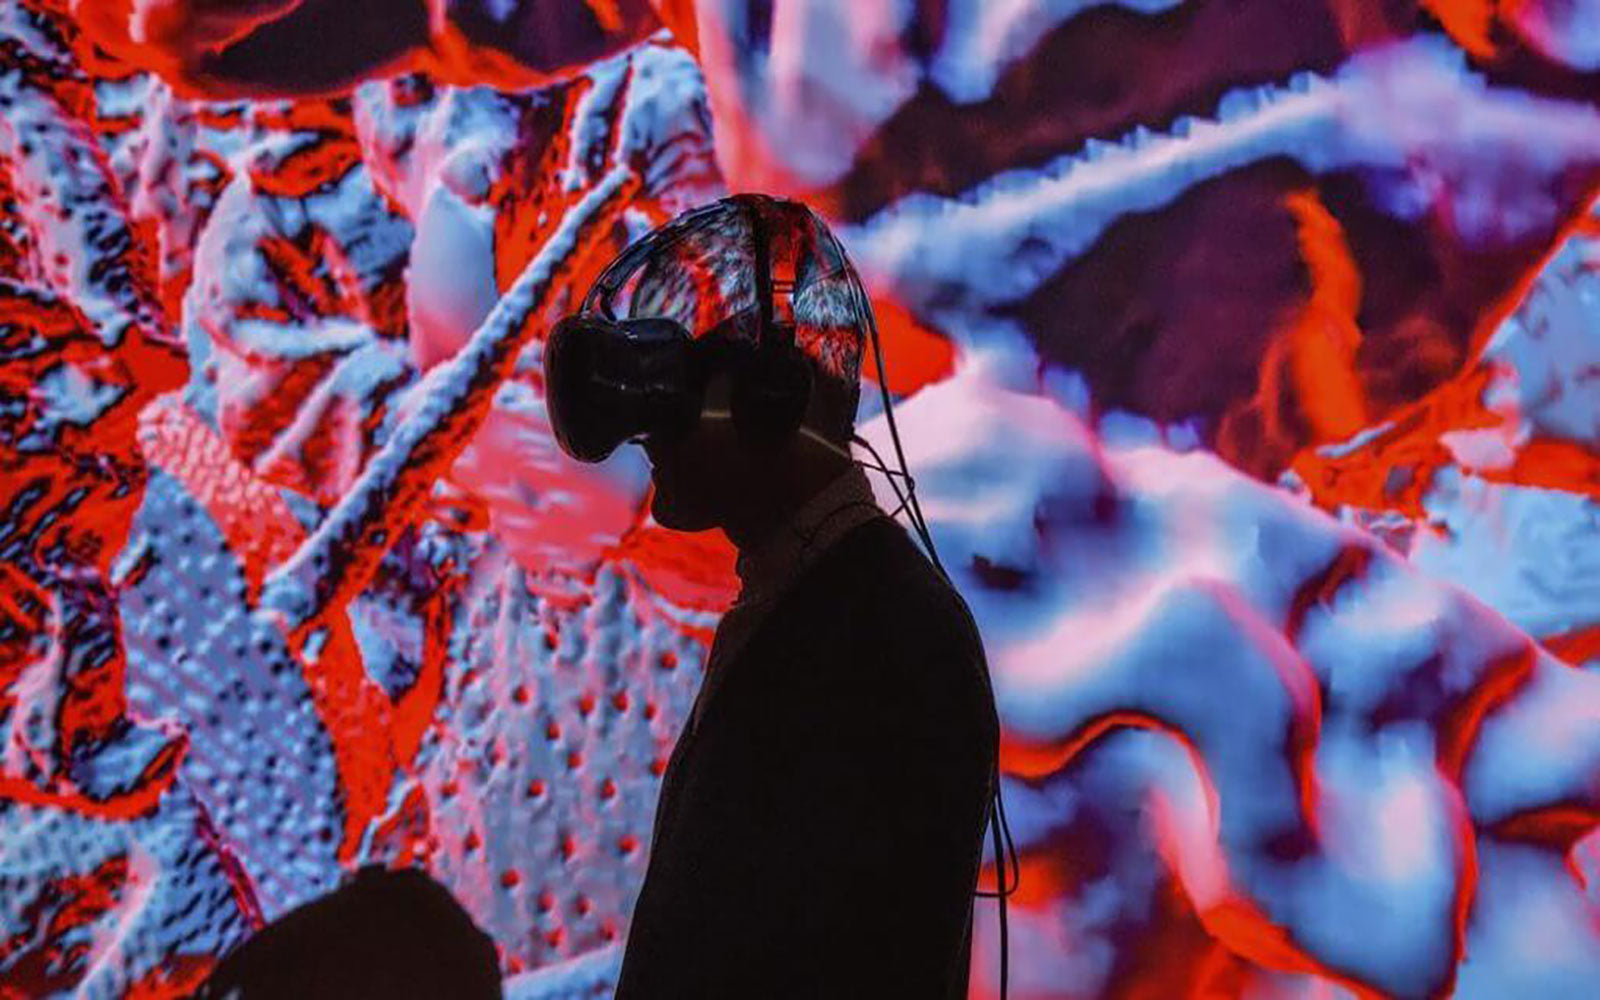 Explore Amazing Virtual Reality Museum Tours, Part I